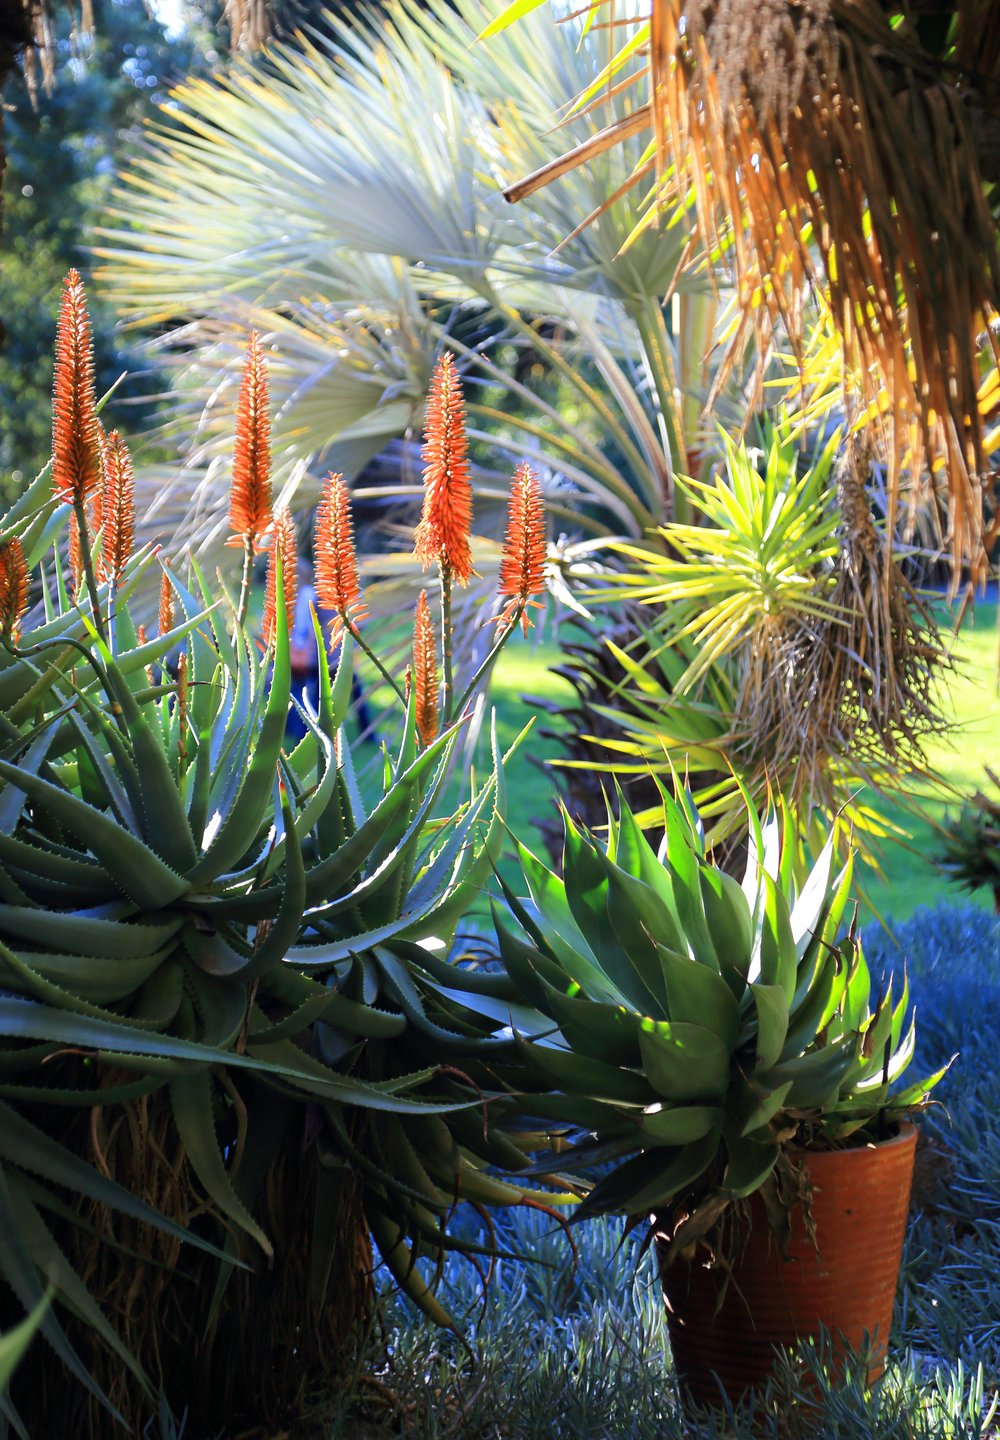 Aloes blooming among other succulents and palms